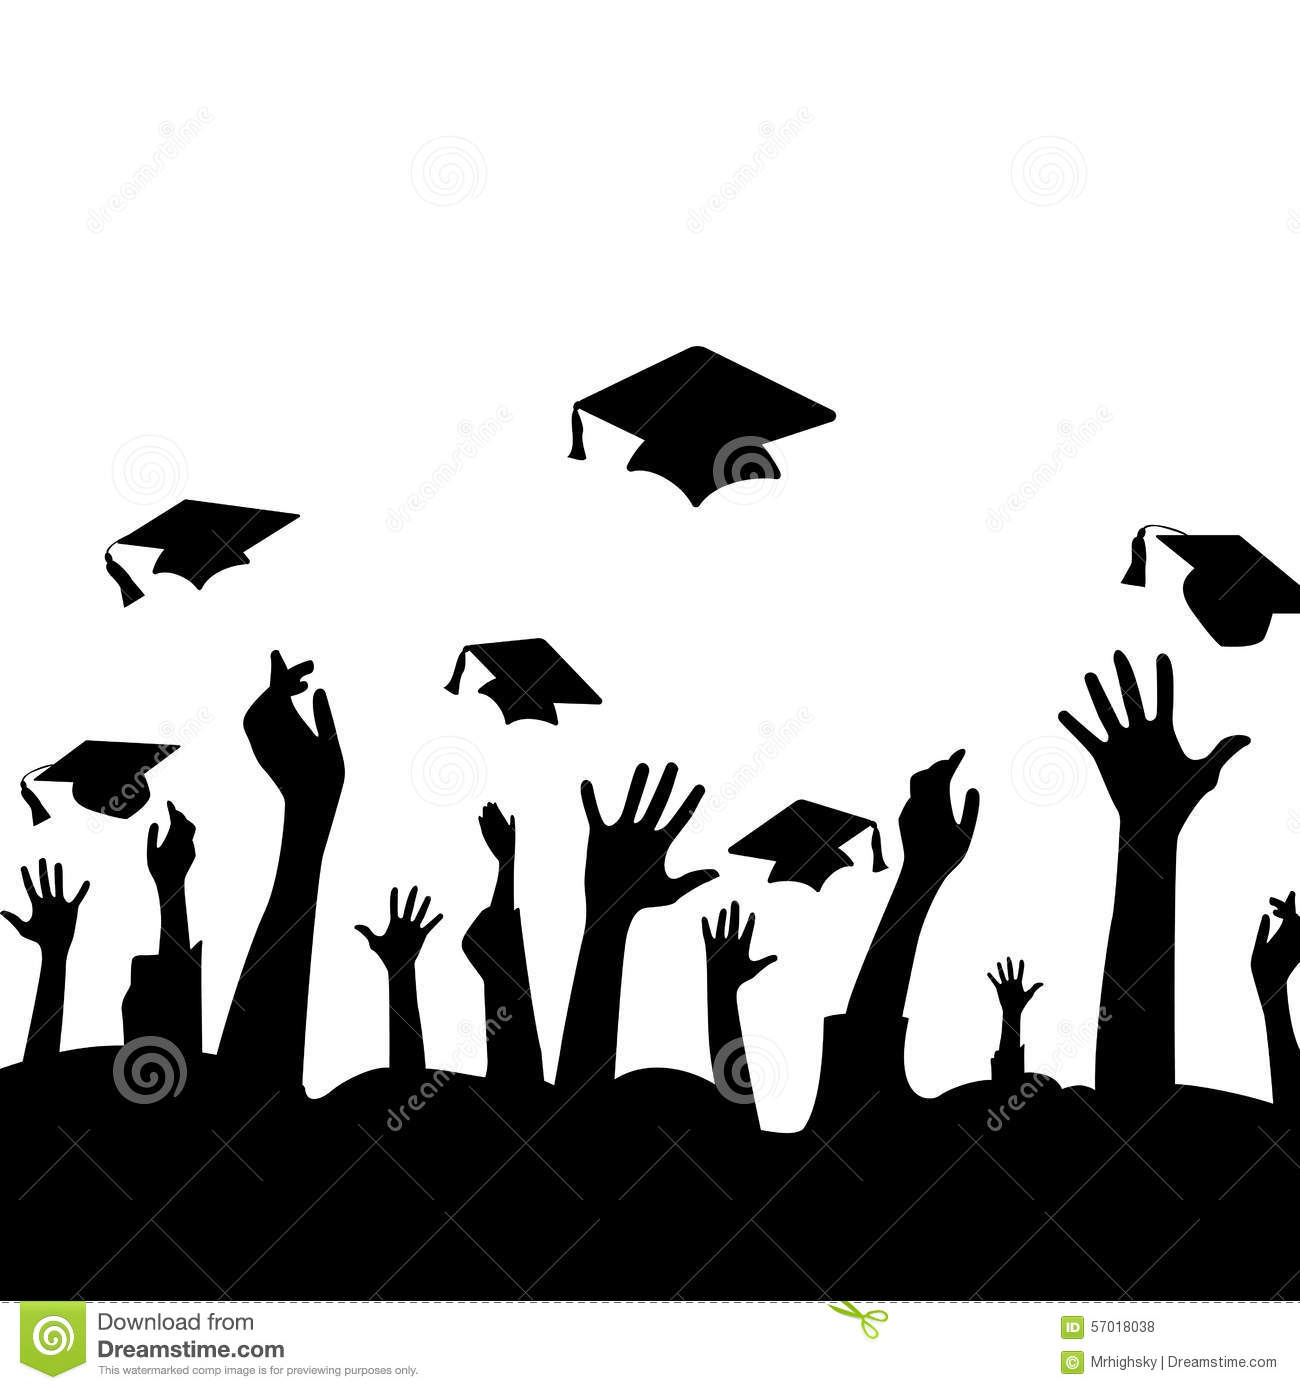 Silhouette Of Hands In The Air And Graduation Hats Stock ...